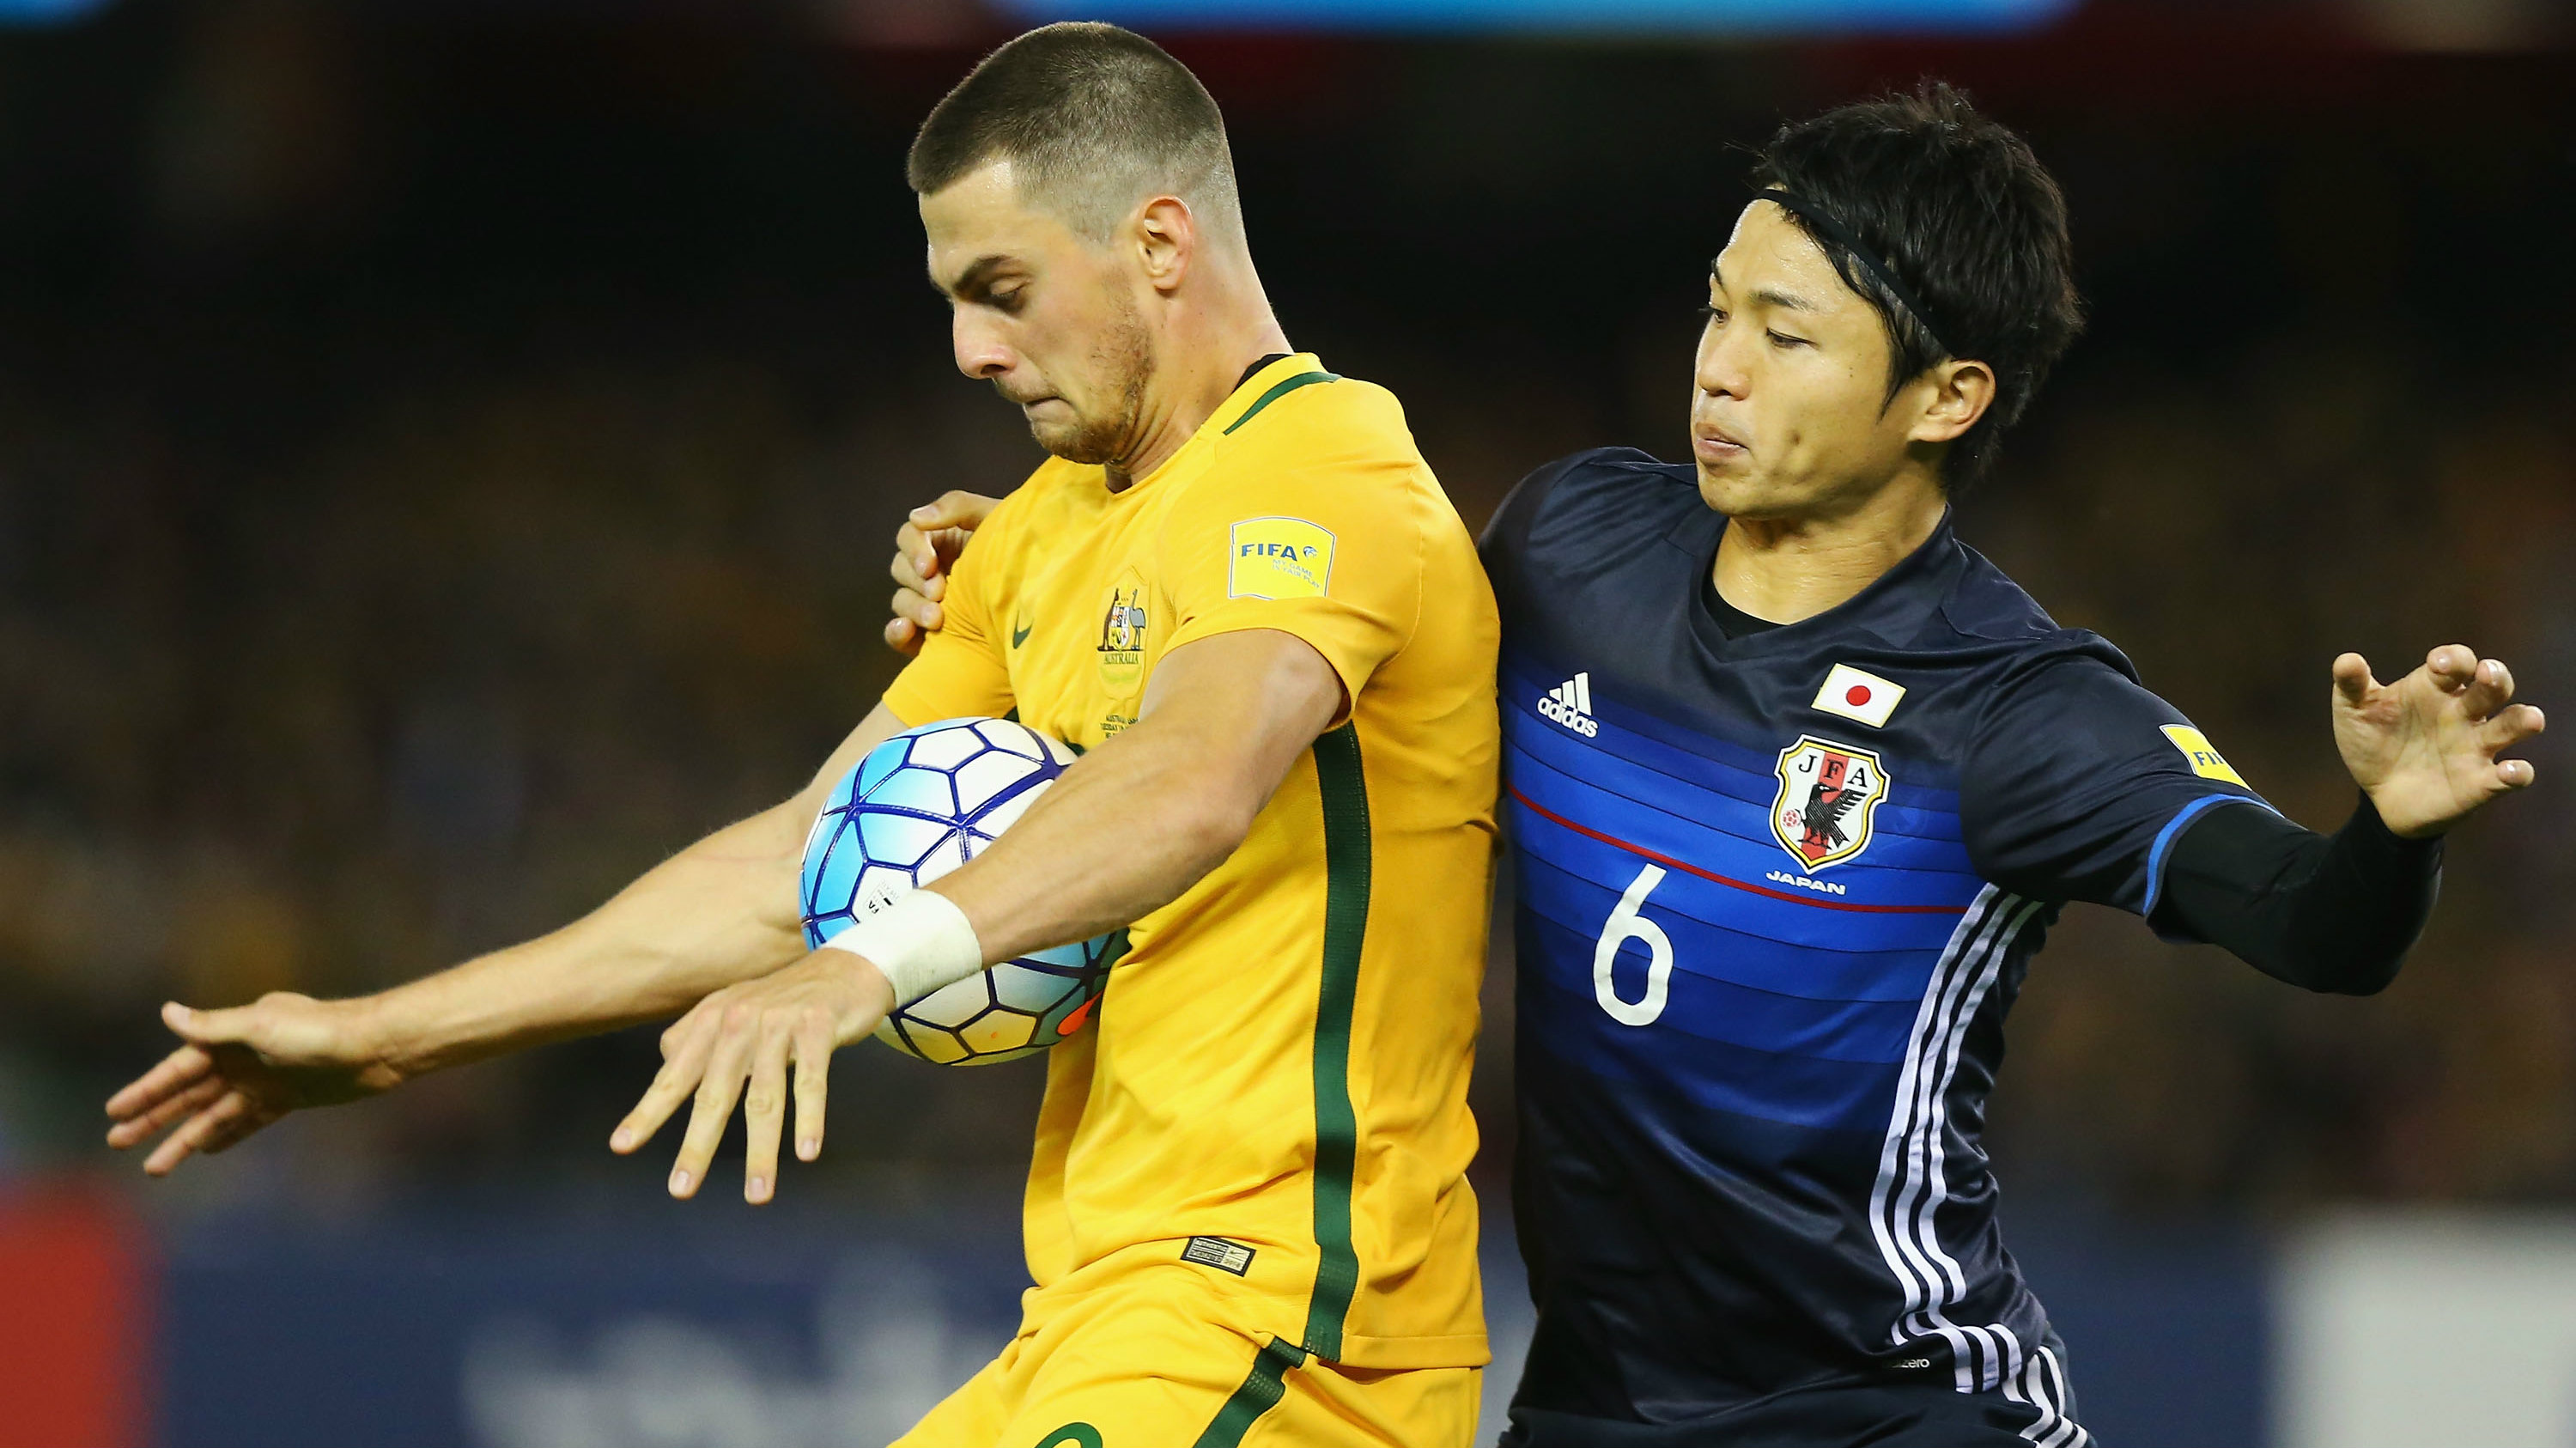 Tomi Juric of the Socceroos and Masato Morishige of Japan compete for the ball.